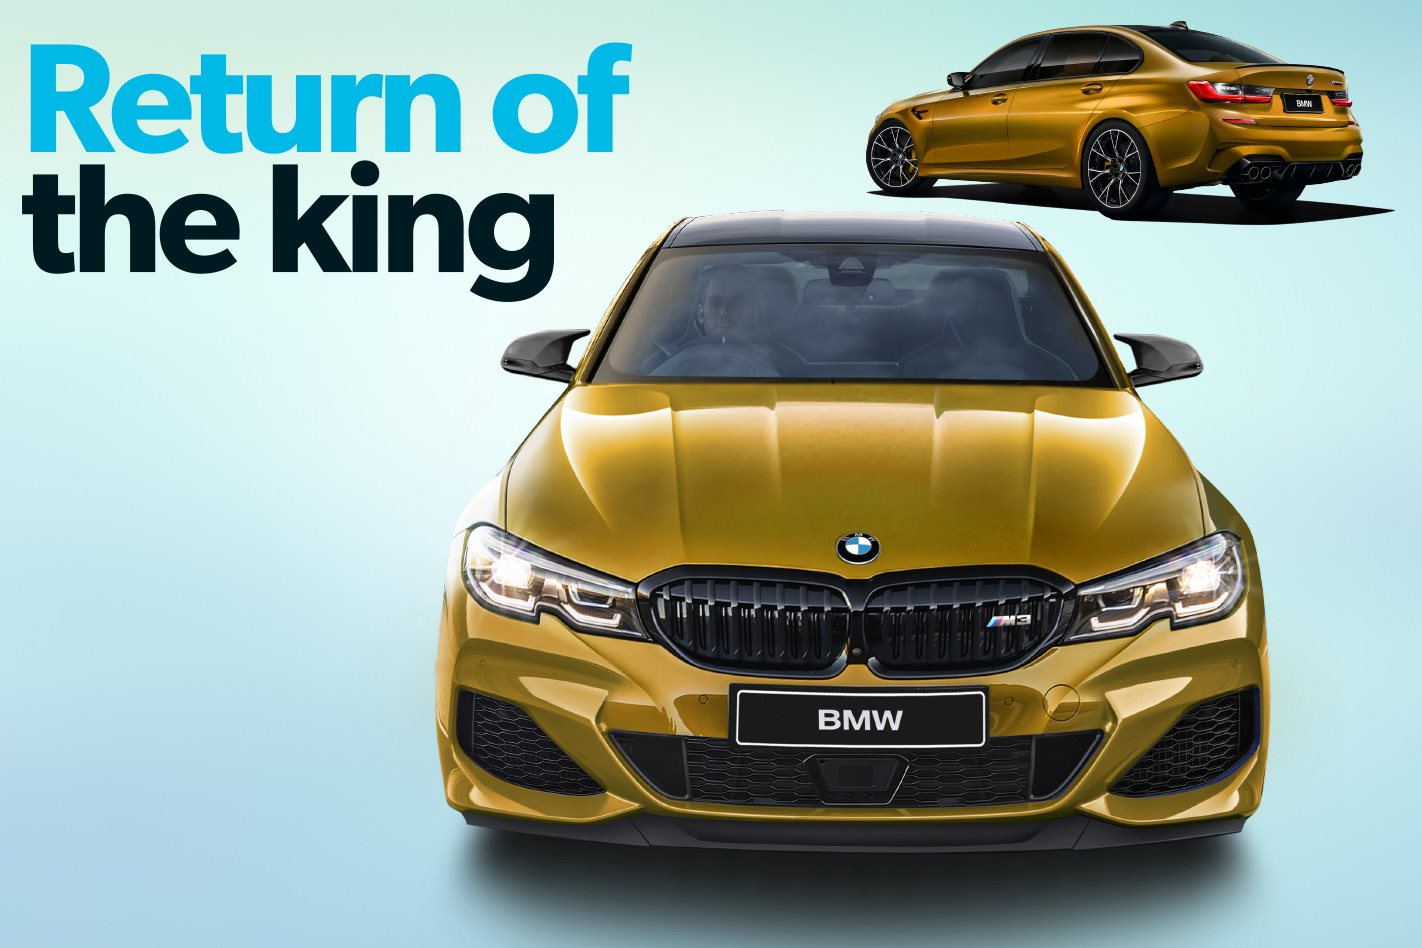 2020 BMW M3: Return of the king